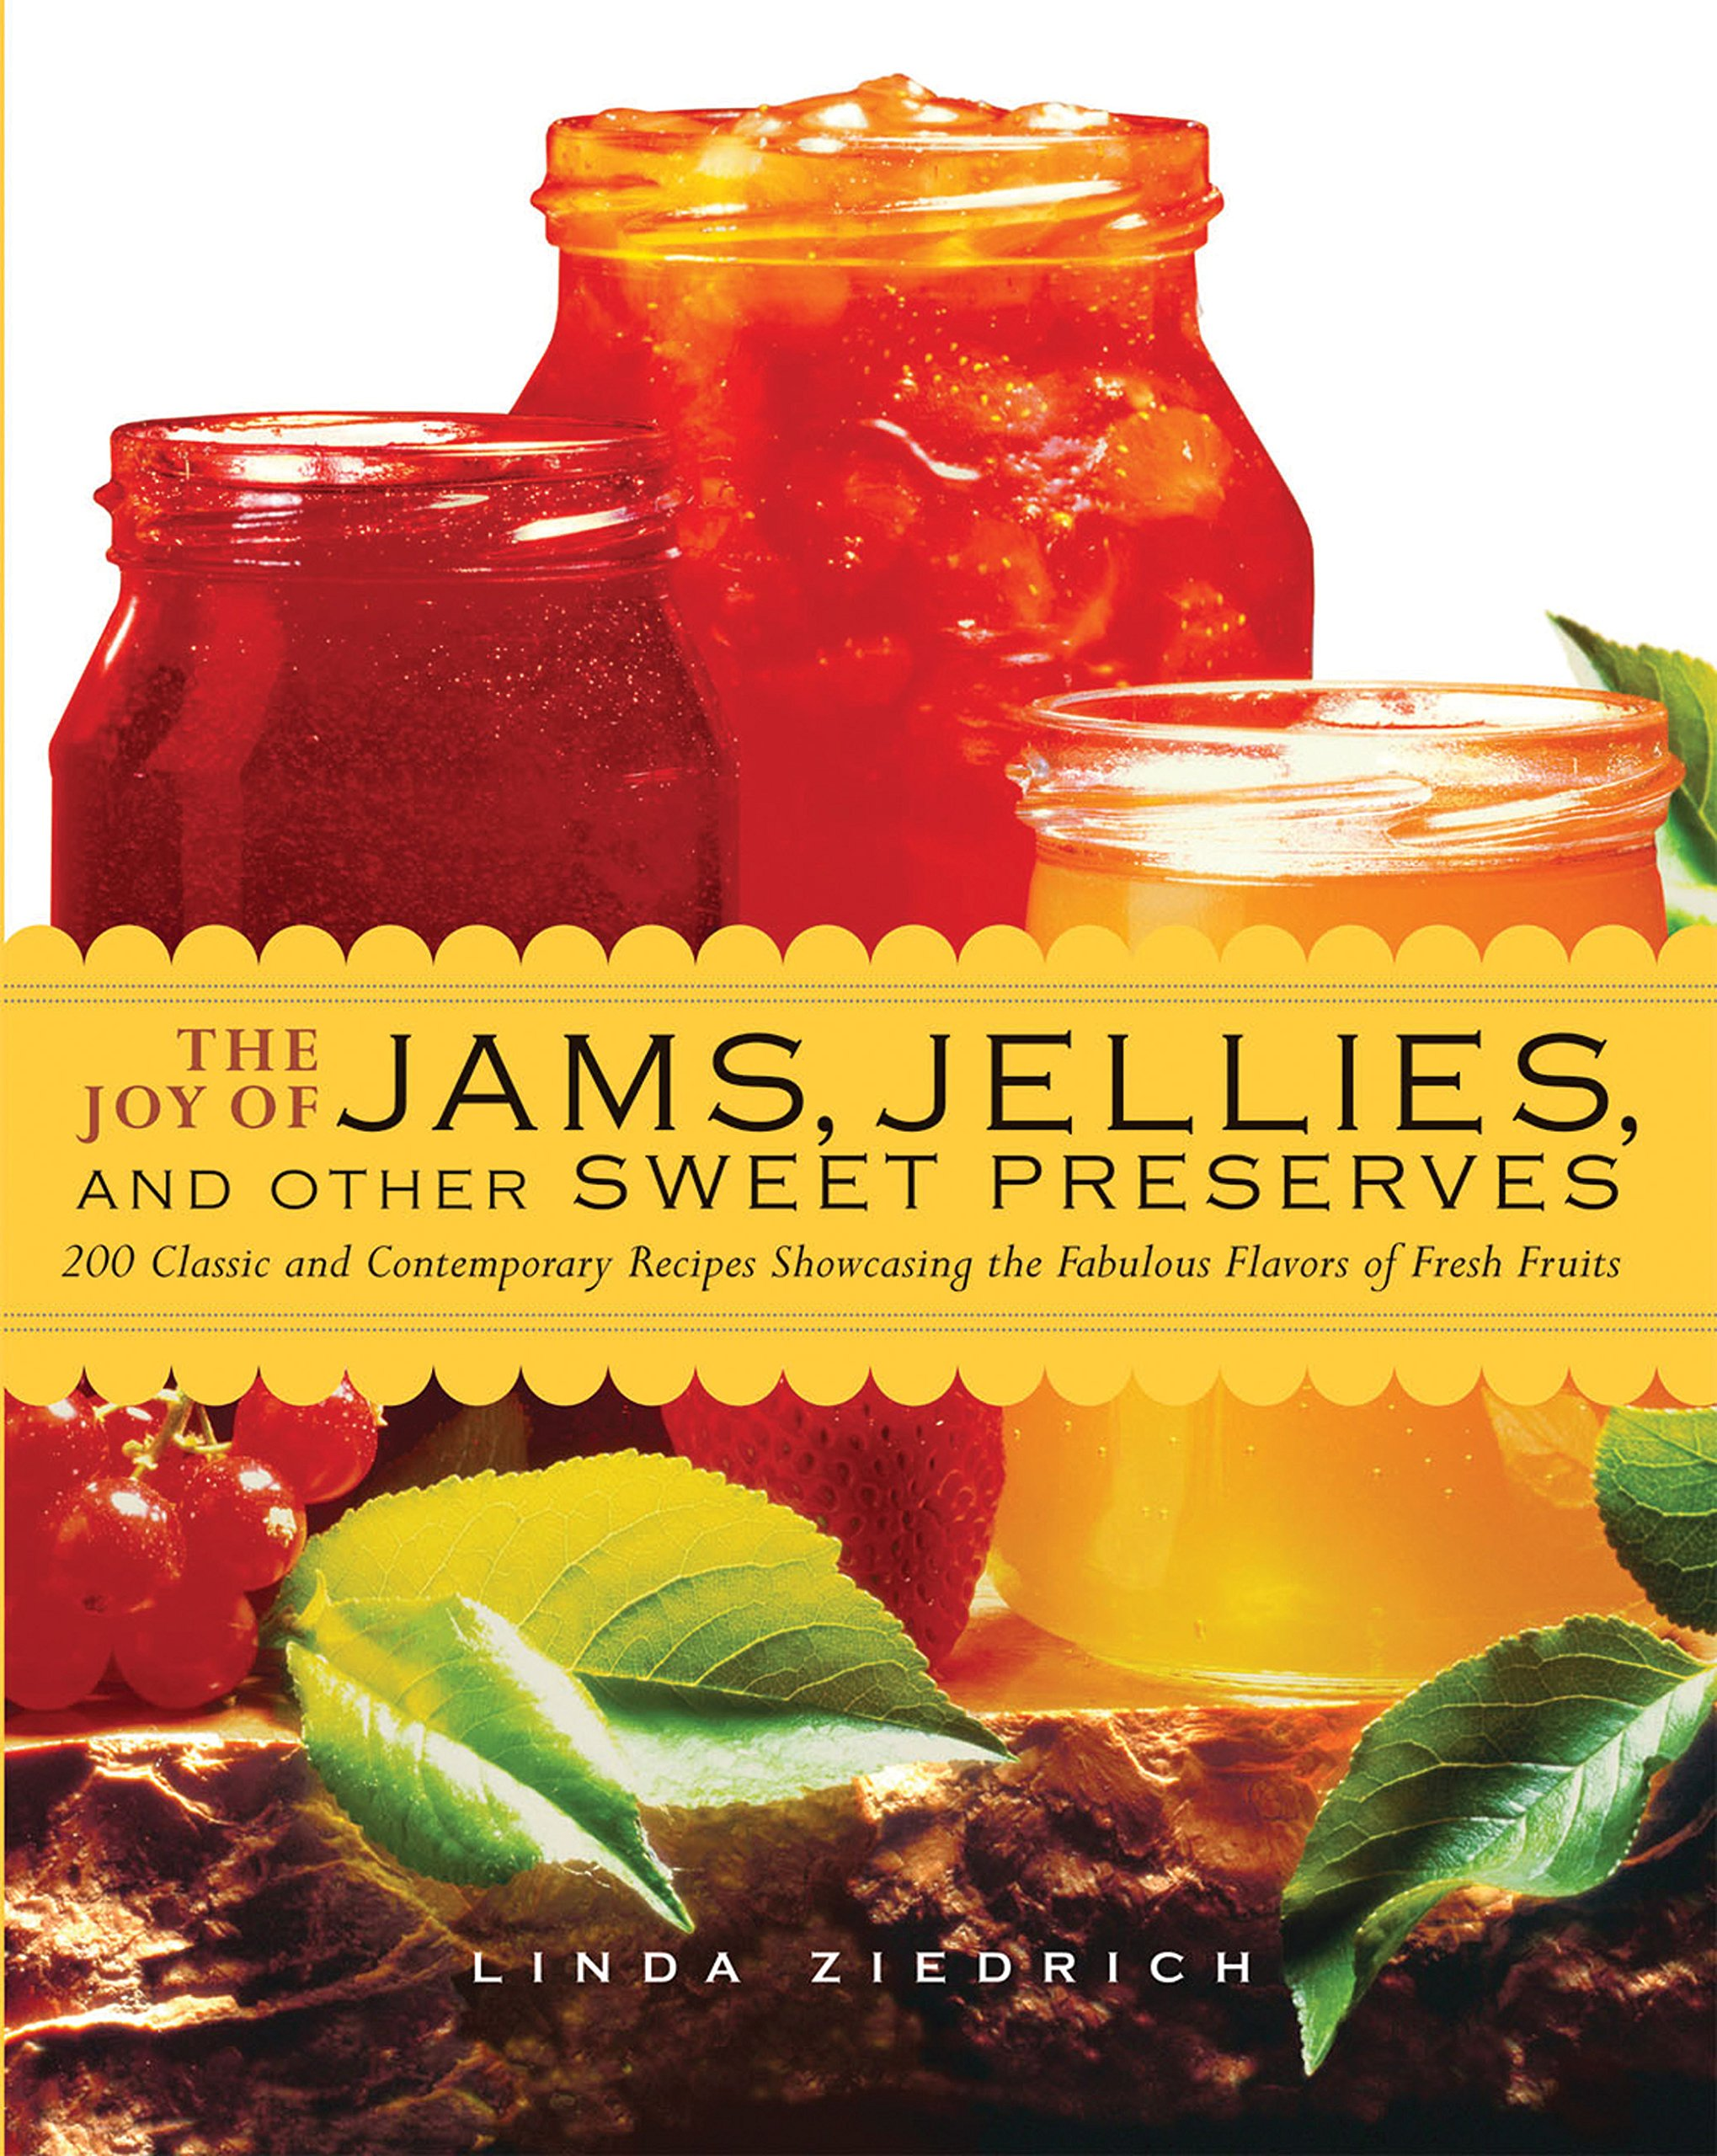 The Joy Of Jams, Jellies, And Other Sweet Preserves: 200 Classic And  Contemporary Recipes Showcasing The Fabulous Flavors Of Fresh Fruits: Linda  Ziedrich: